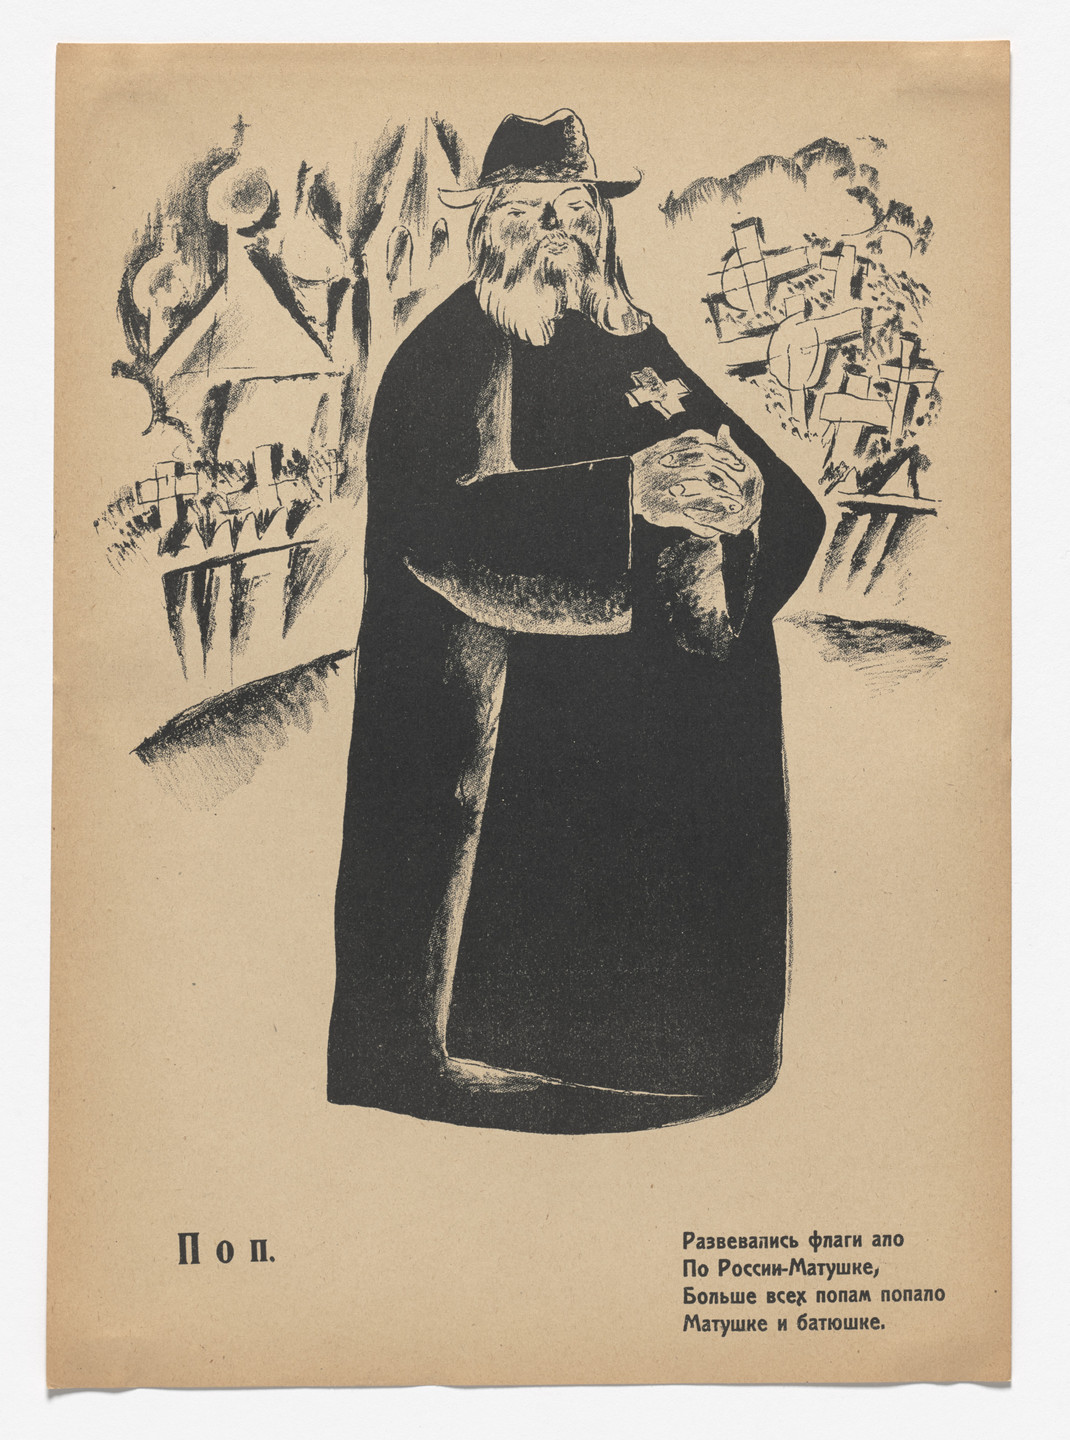 Vladimir Kozlinskii. Pop (Priest) from Geroi i zhertvy revoliutsii. Oktiabr' 1917–1918 (Heroes and Victims of the Revolution: October 1917–1918). 1918